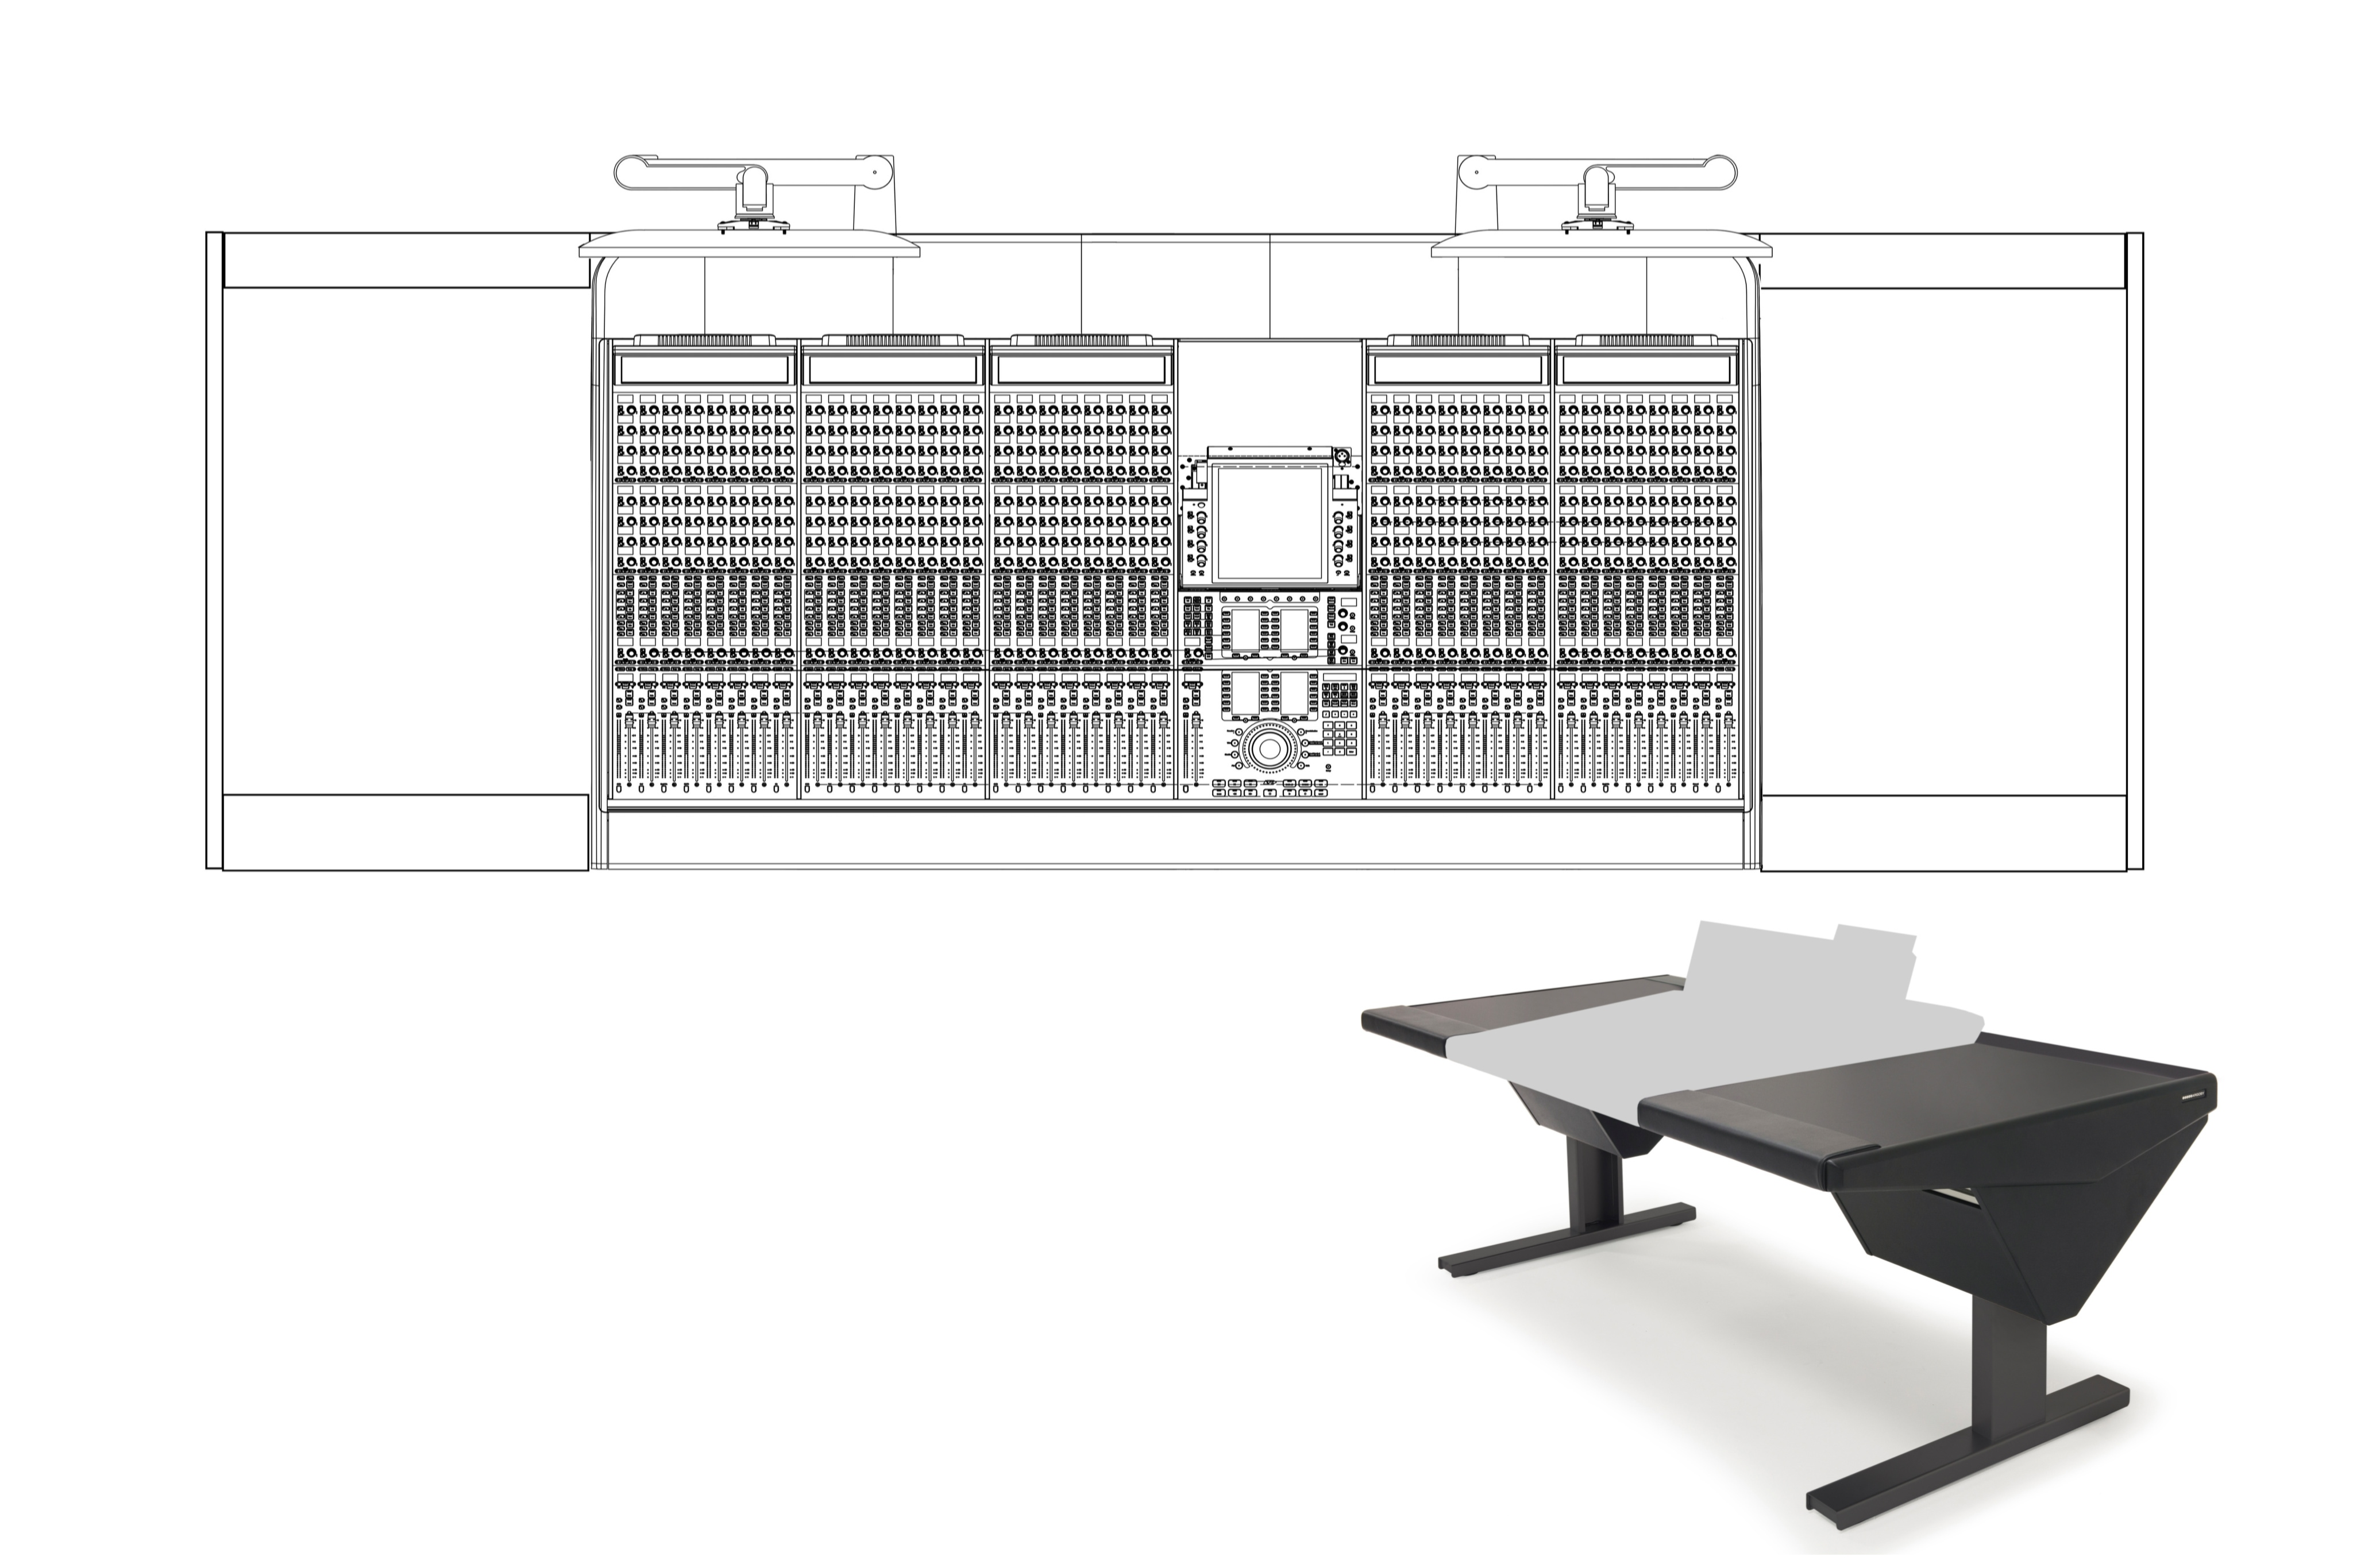 40 Fader System with Desk (L) and Desk (R)